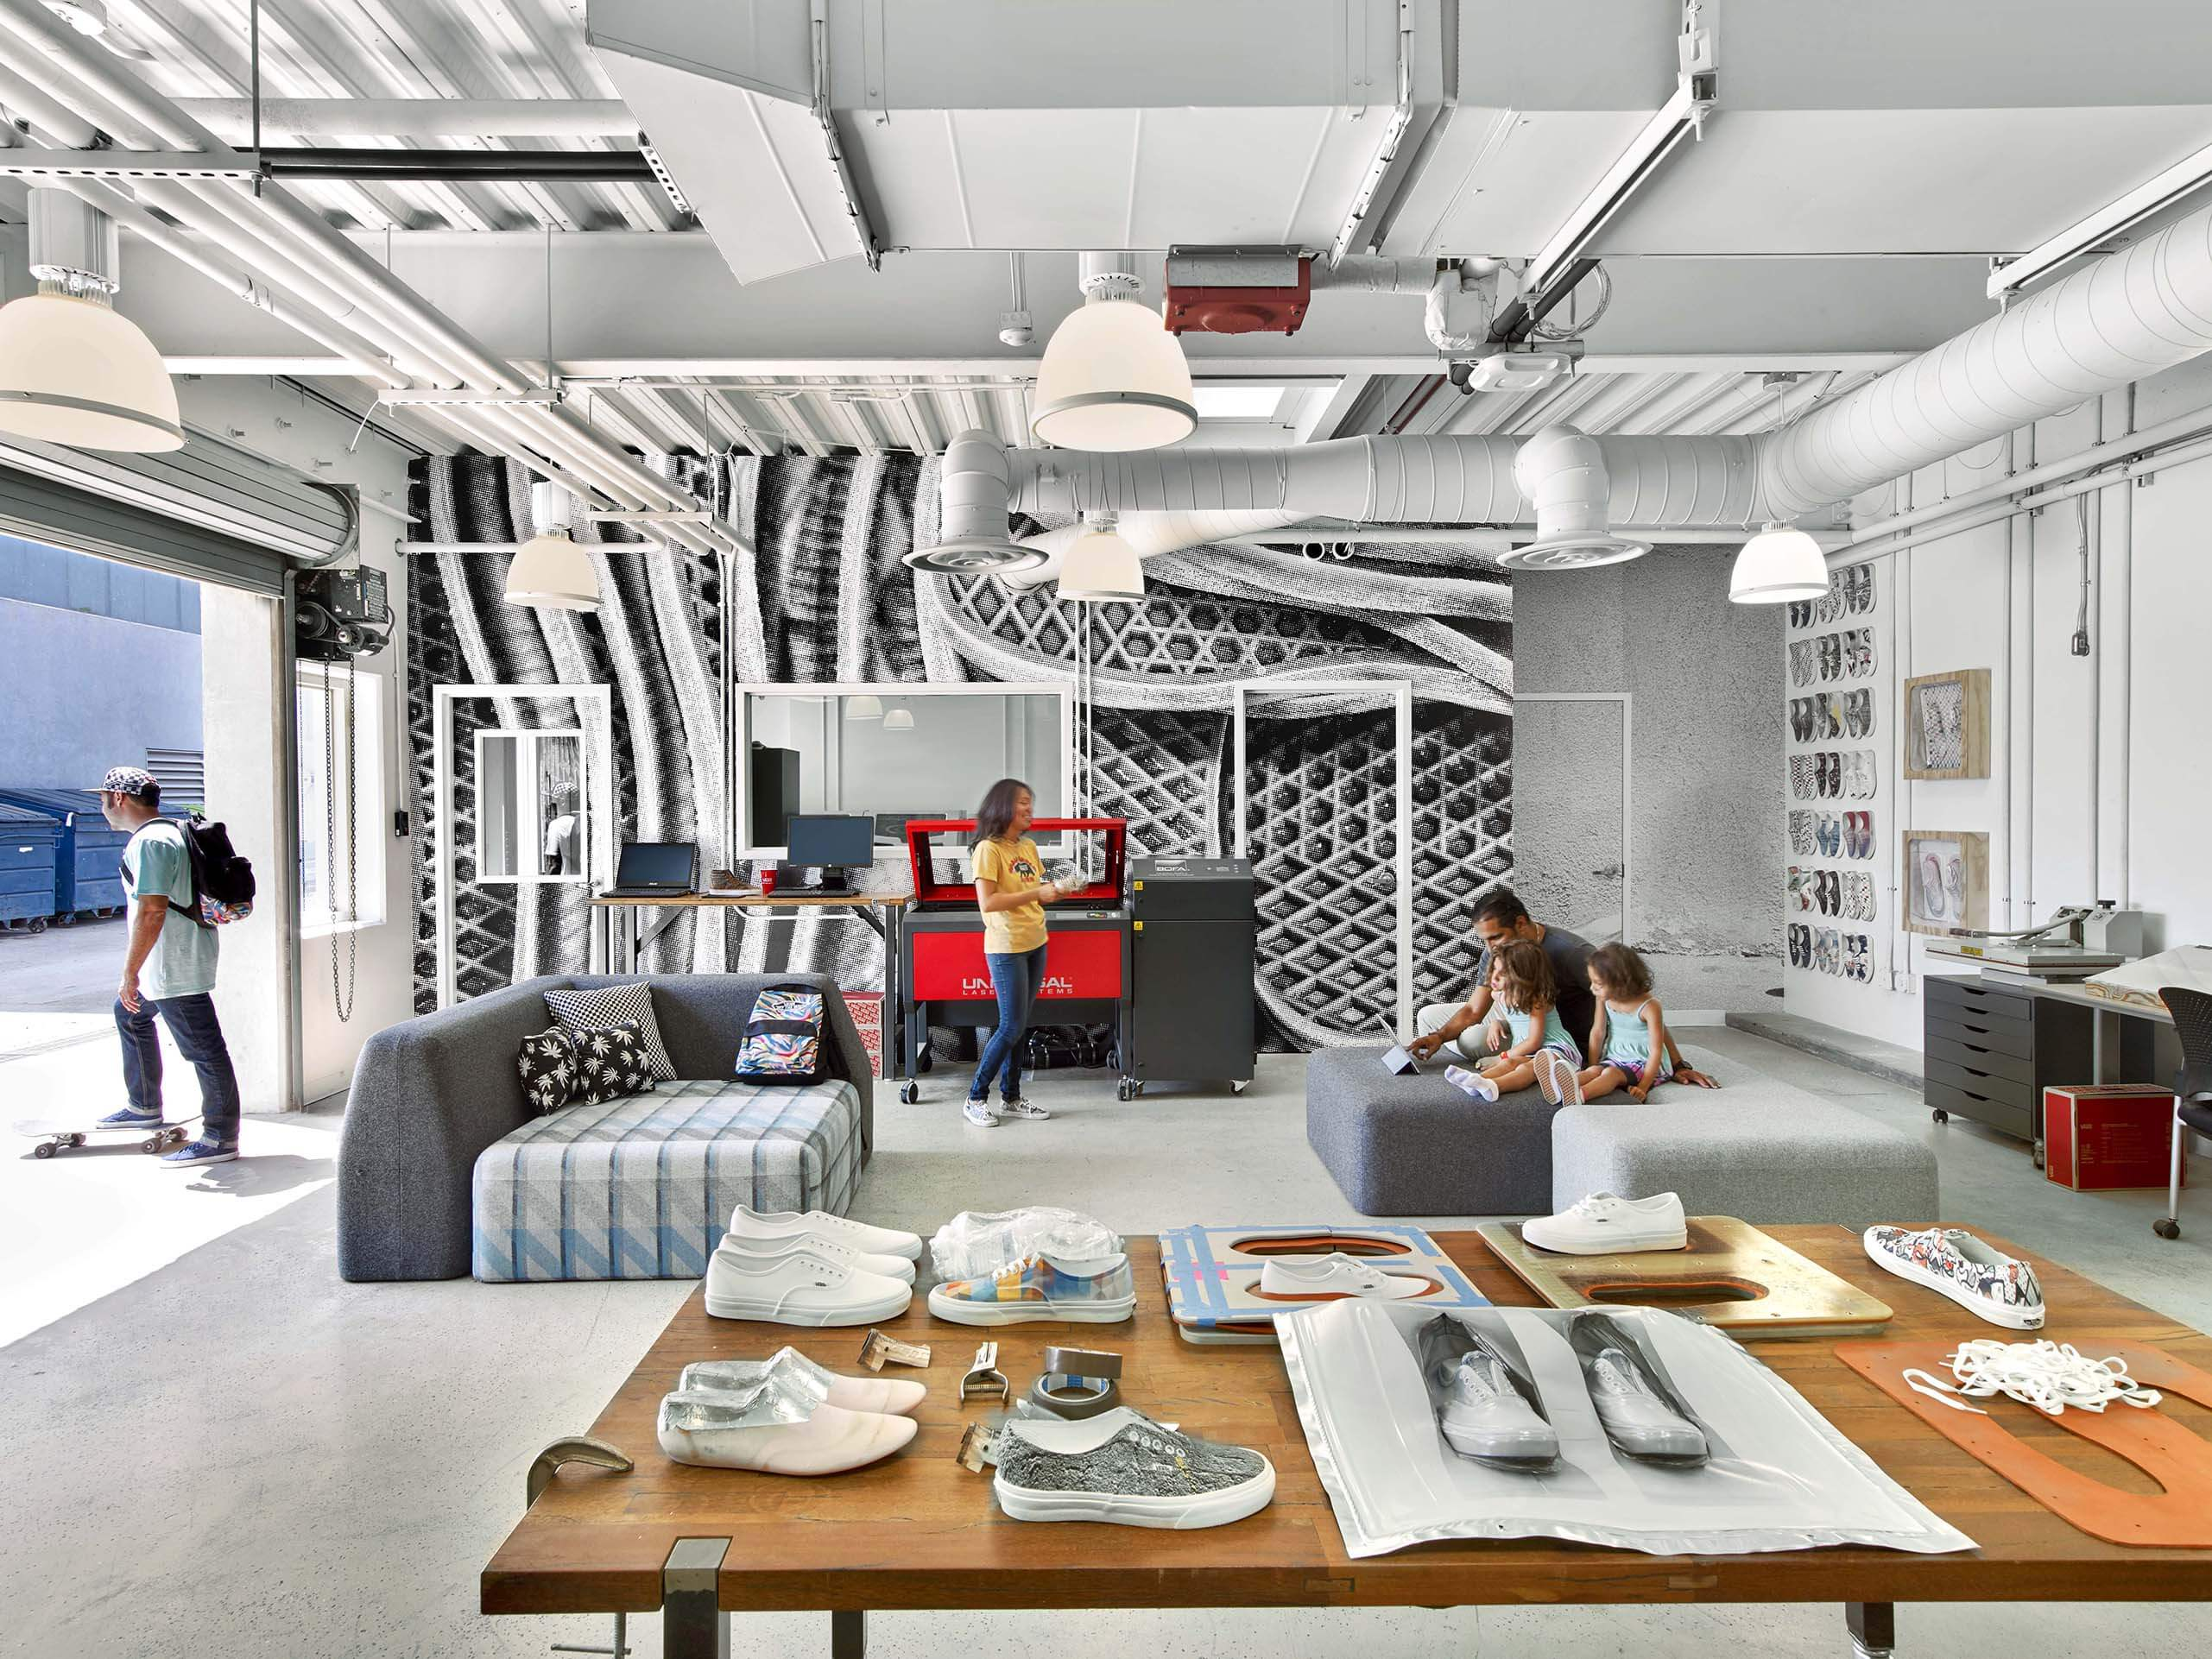 Vans 39 new digs is a 182 000 sq ft transformation by rapt for 111 maiden lane salon san francisco